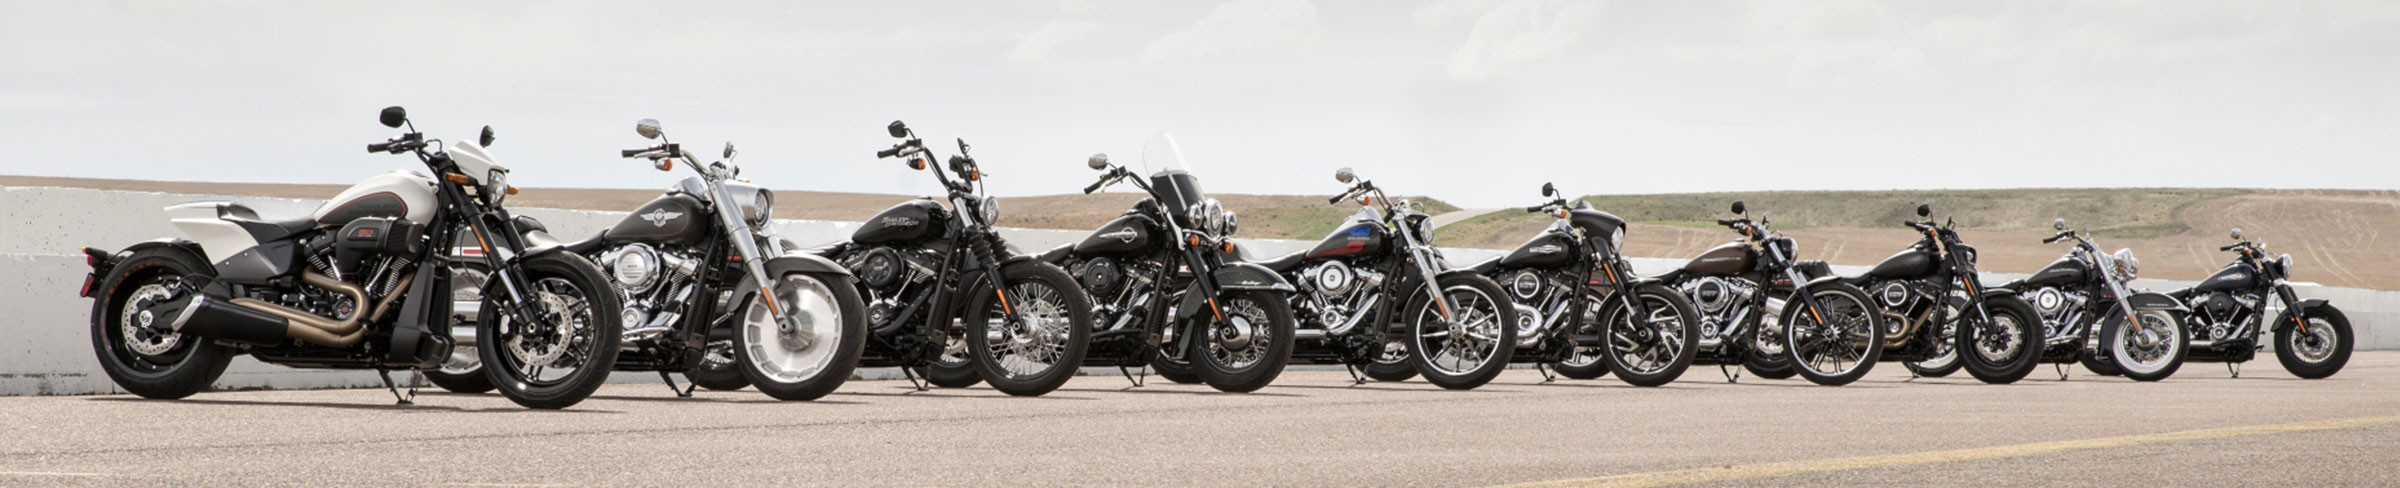 New Harley Davidson Softail for sale in Wichita, KS